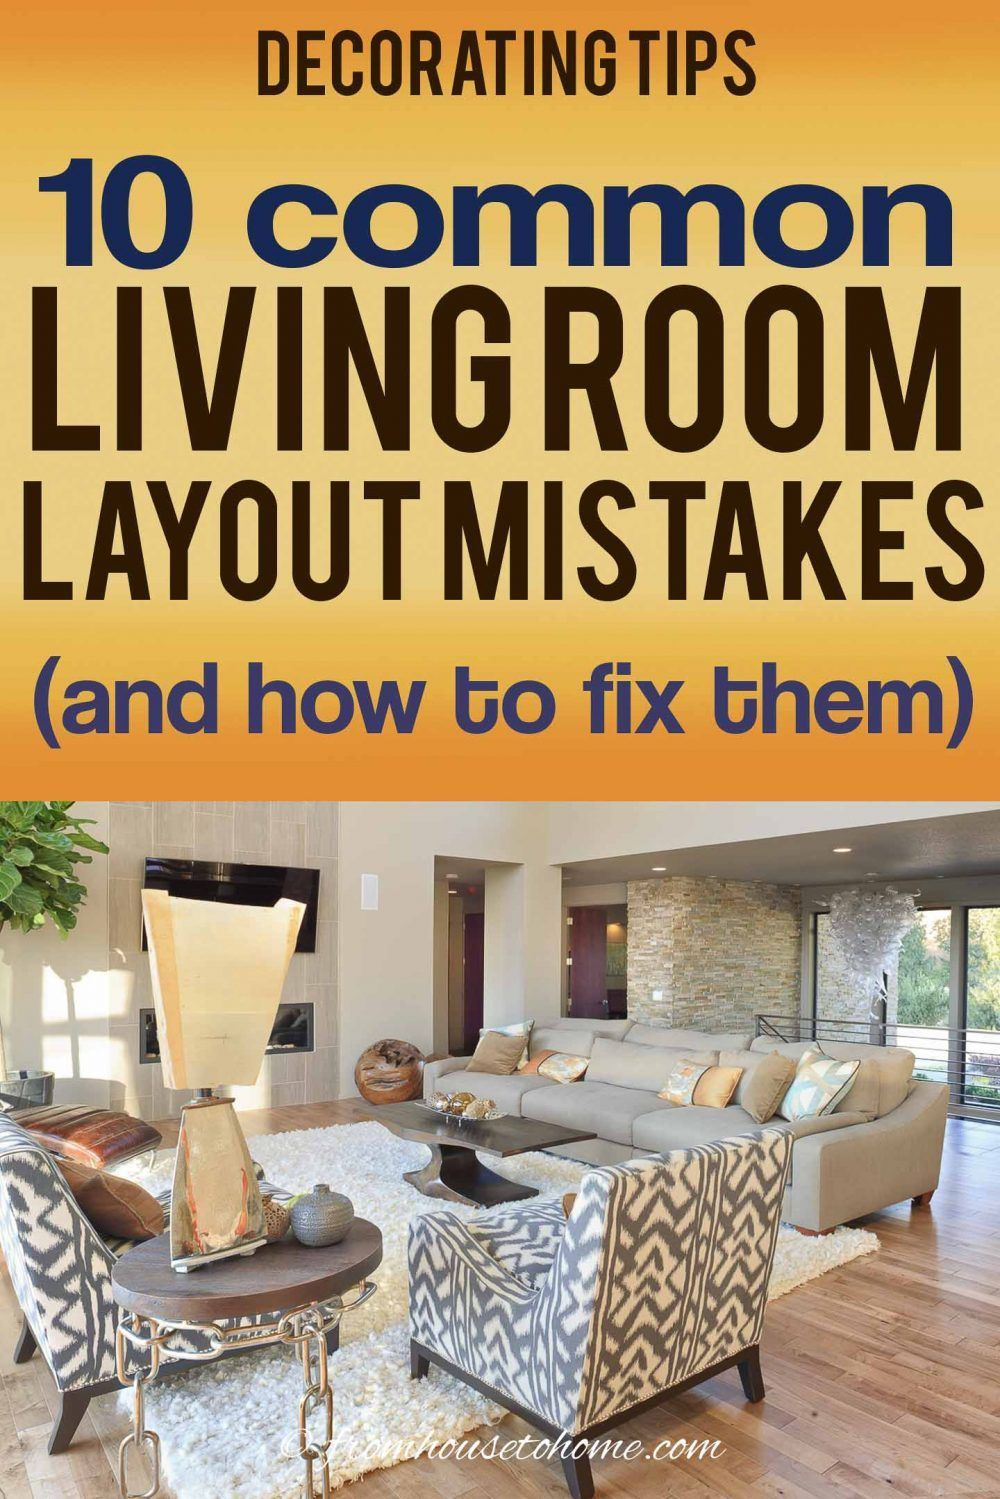 10 Common Living Room Layout Mistakes And How To Fix Them In 2020 Livingroom Layout Room Layout Living Room Furniture Arrangement